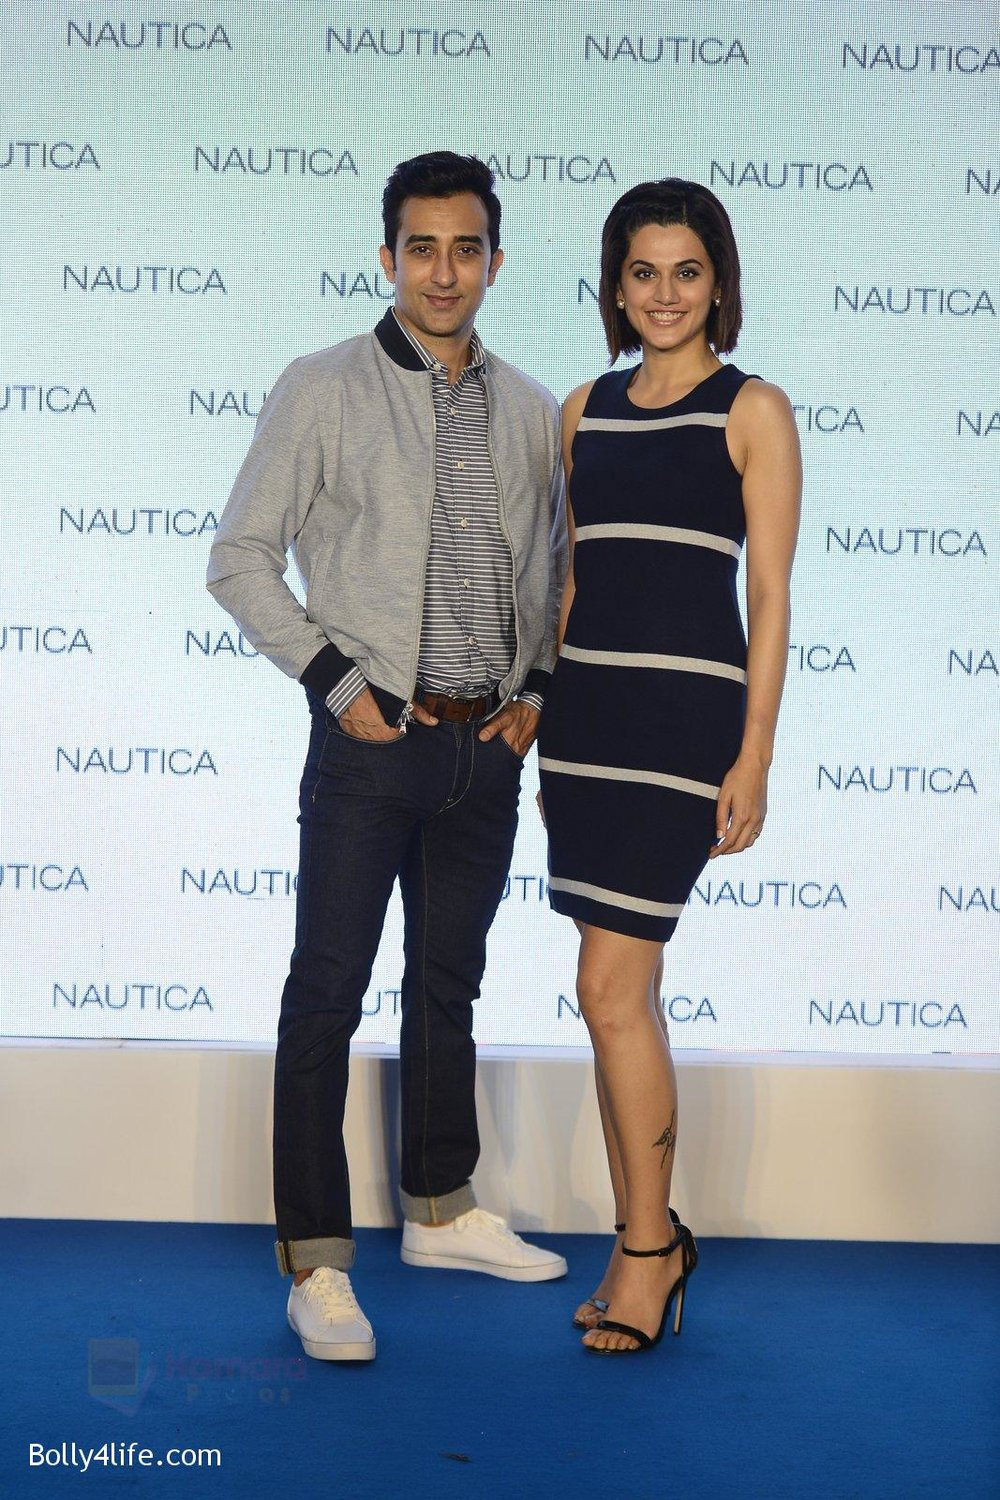 Taapsee-pannu-and-rahul-khanna-at-nautica-event-on-28th-Sept-2016-43.jpg